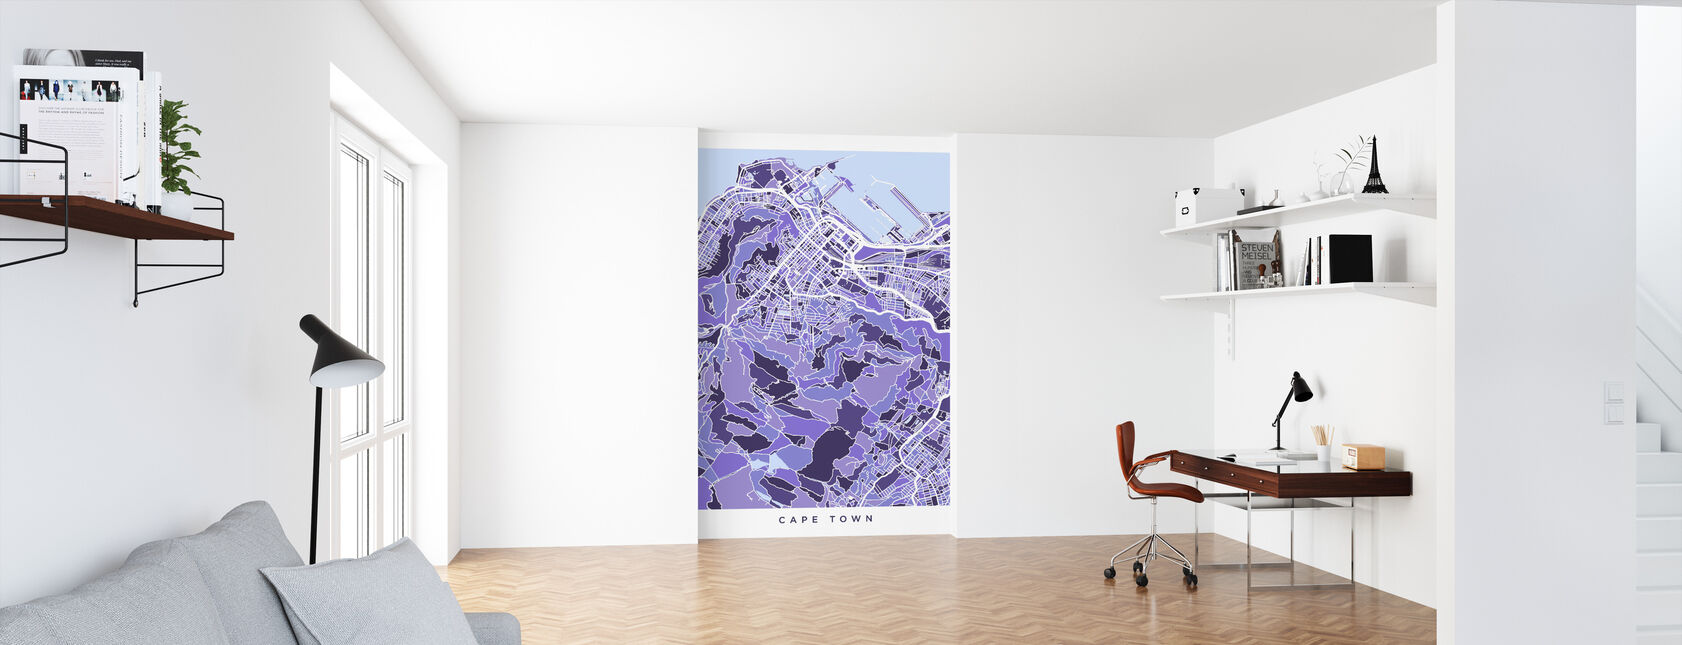 Cape Town South Africa City Street Map - Wallpaper - Office